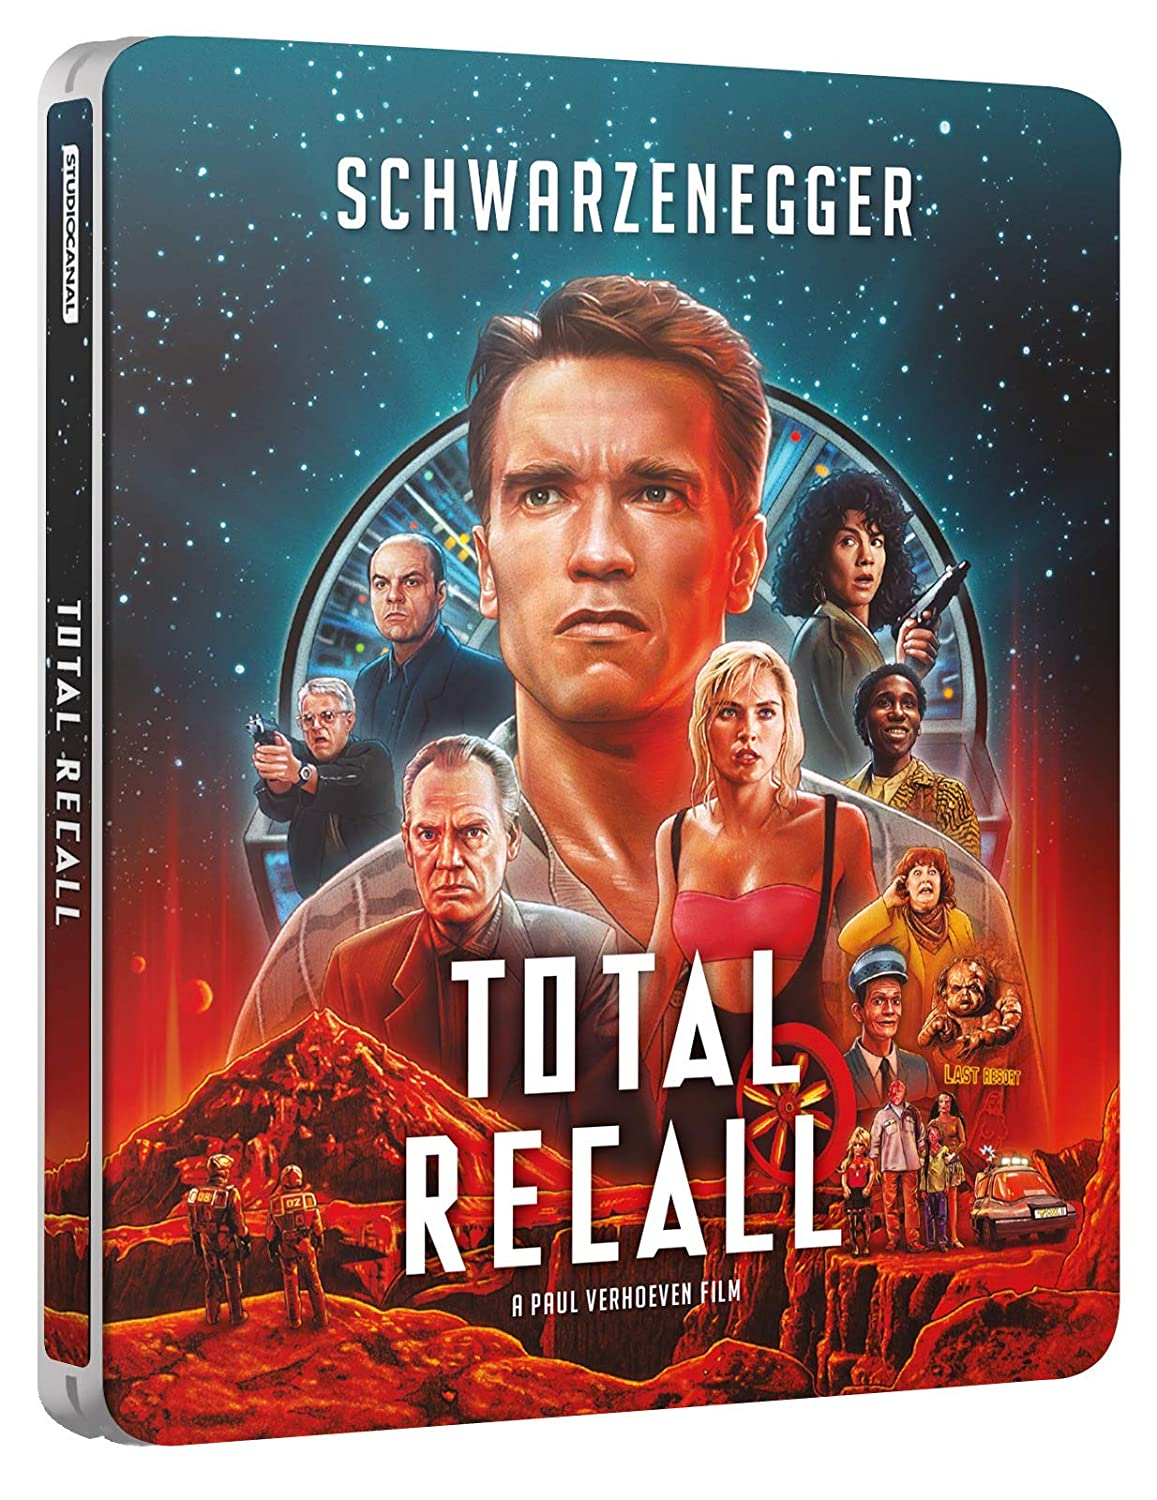 Total Recall Steelbook Blu-ray 2020 Selling and New York Mall selling